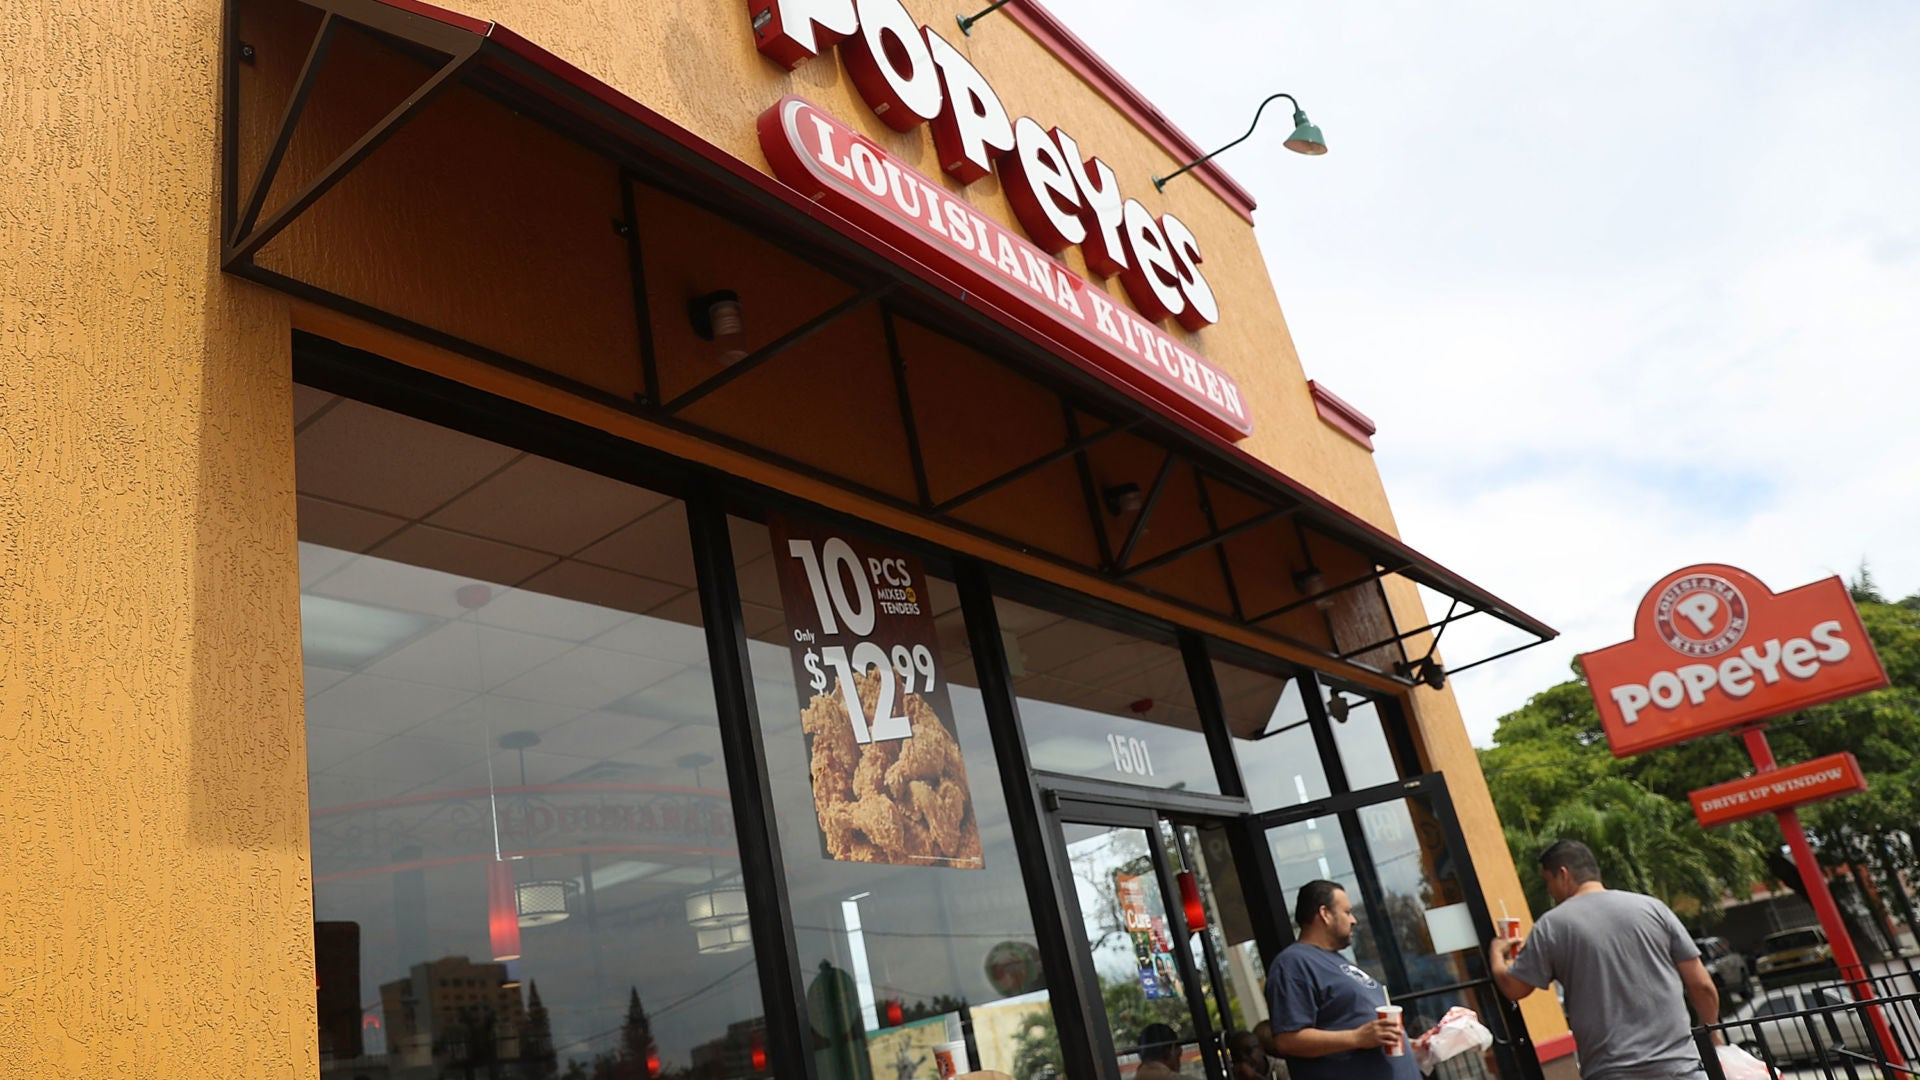 Man Fatally Stabbed At Maryland Popeyes Over Line Cutting Argument